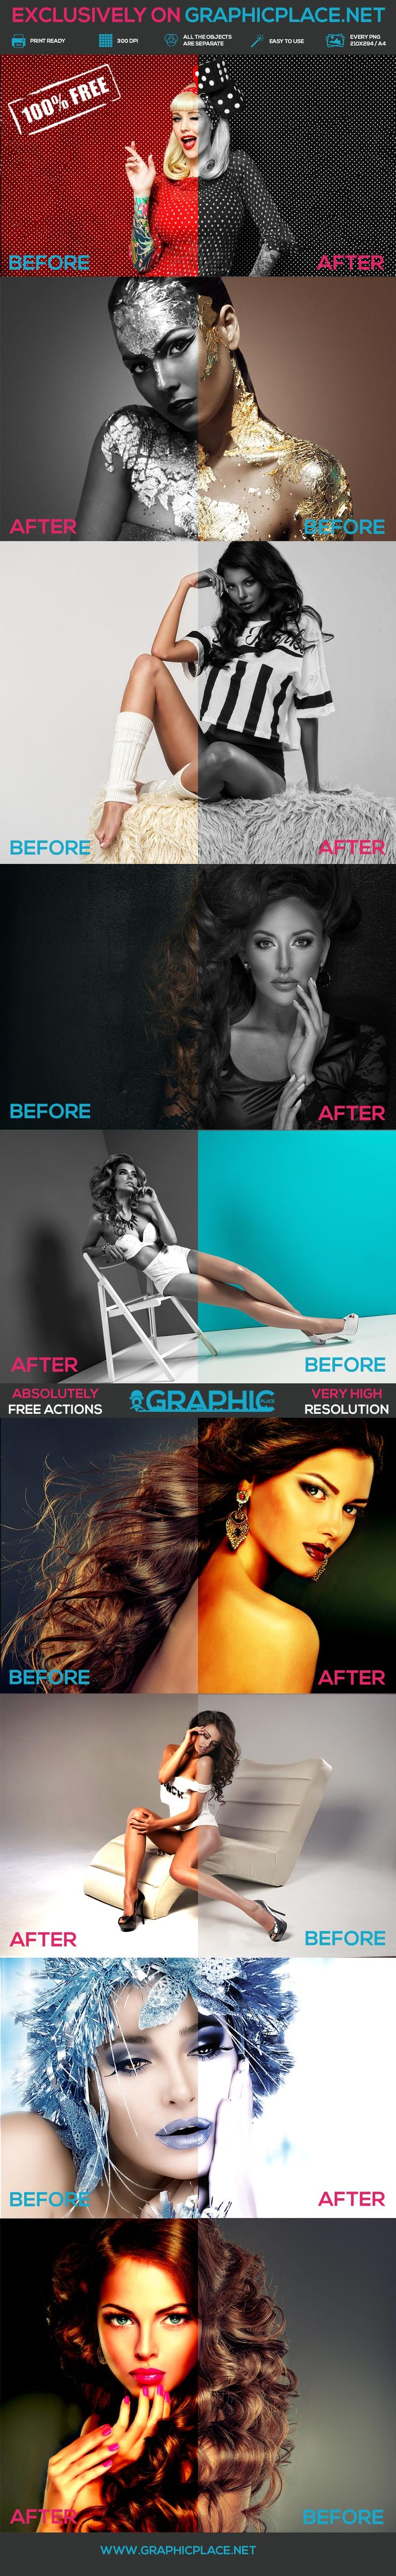 9 Exclusive Actions - Free Photoshop Actions.  #freeaction #photoshopaction #photohighquality #blackandwhite #coldeffect #fireeffect #exclusivephotoshopactions  DOWNLOAD FREE PHOTOSHOP ACTION: http://www.graphicplace.net/9-photoshop-actions-free-actions/  MORE FREE GRAPHIC RESOURCES: http://www.graphicplace.net/